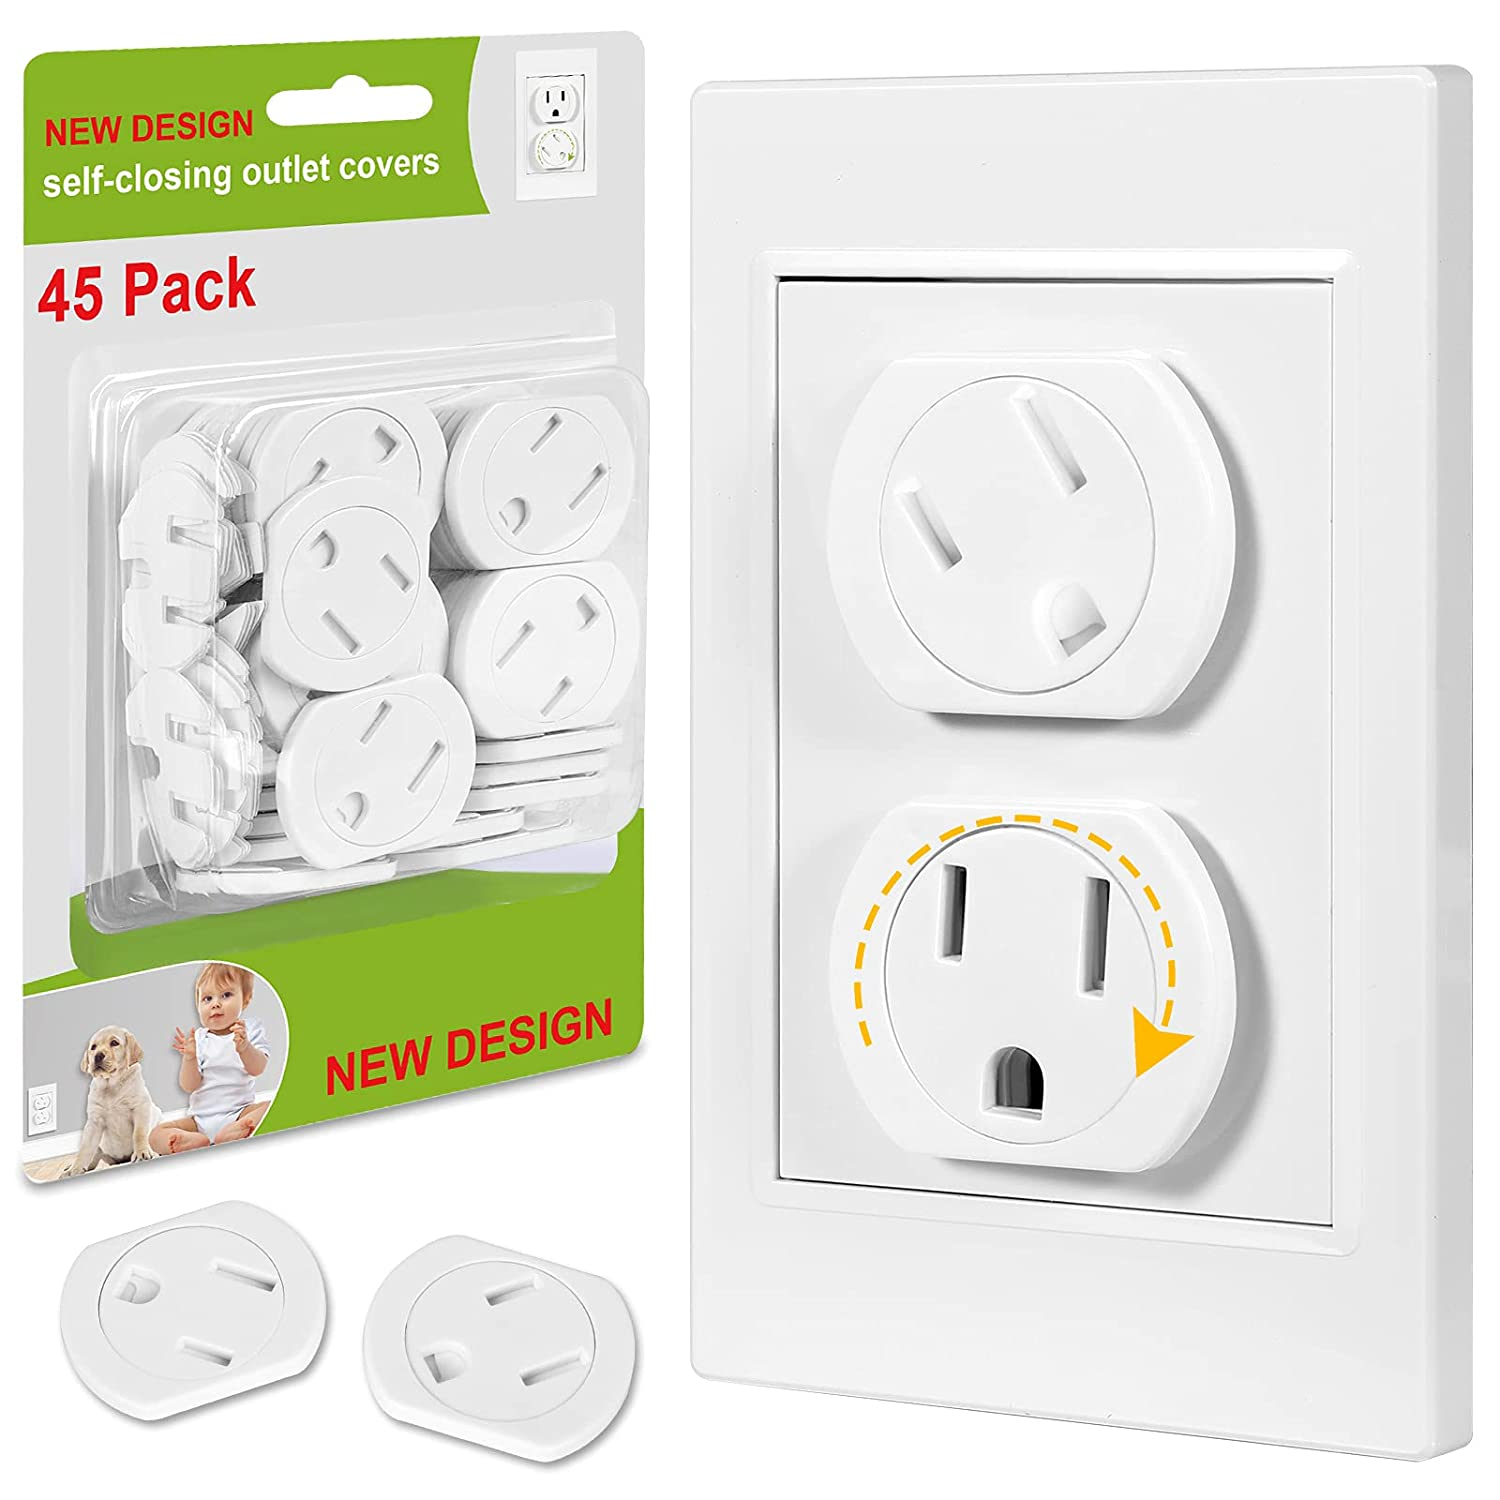 Outlet Covers (45 Pack) Self-Closing Outlet Plug Covers 3-Prong Swivel Electrical Outlet Protectors for Baby Upgraded Adhesive Installation Socket Covers Comes with Extra Sticker Durable ABS Plastic